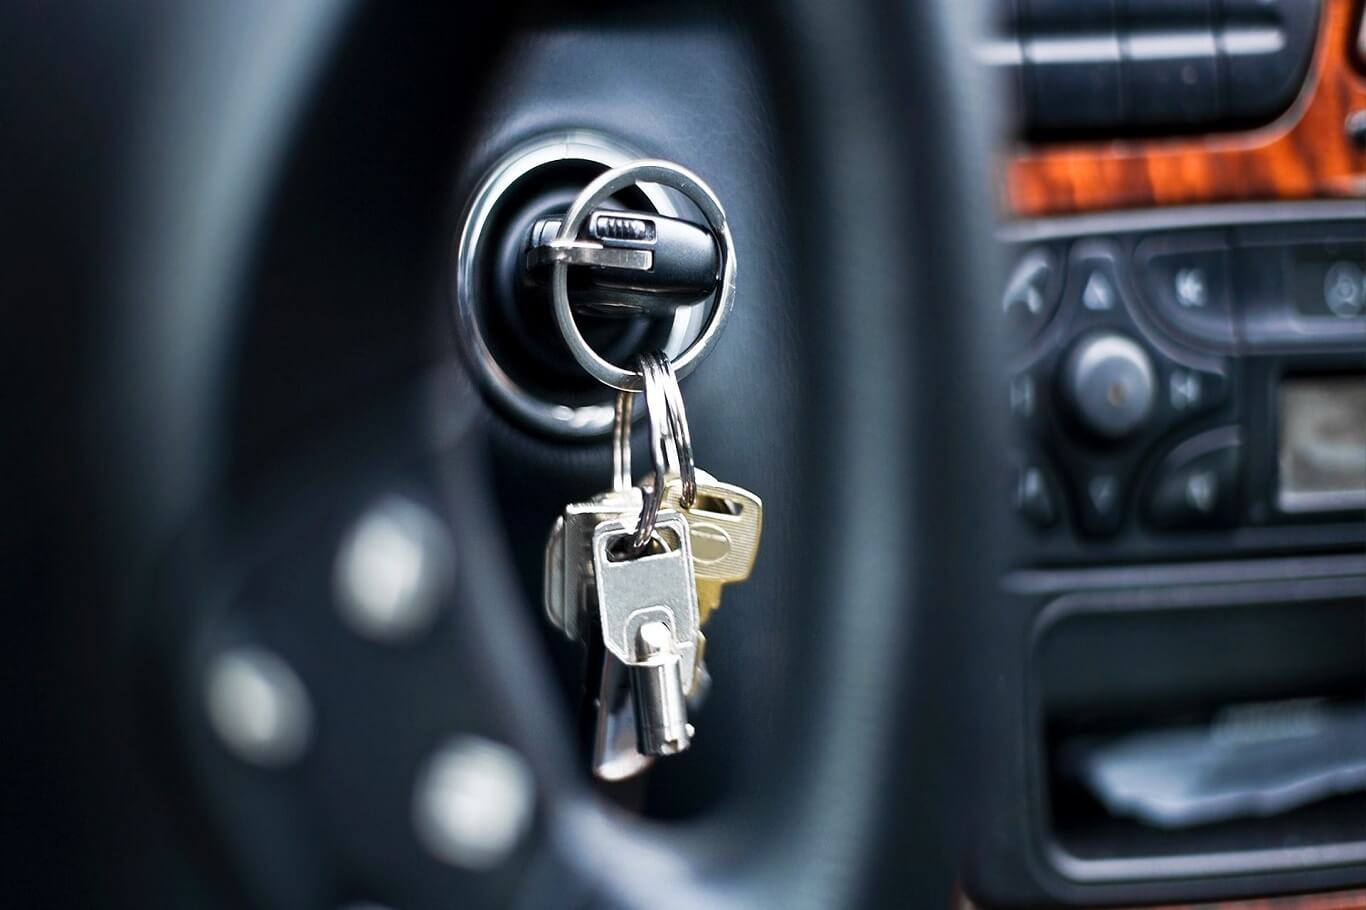 key stuck in the ignition